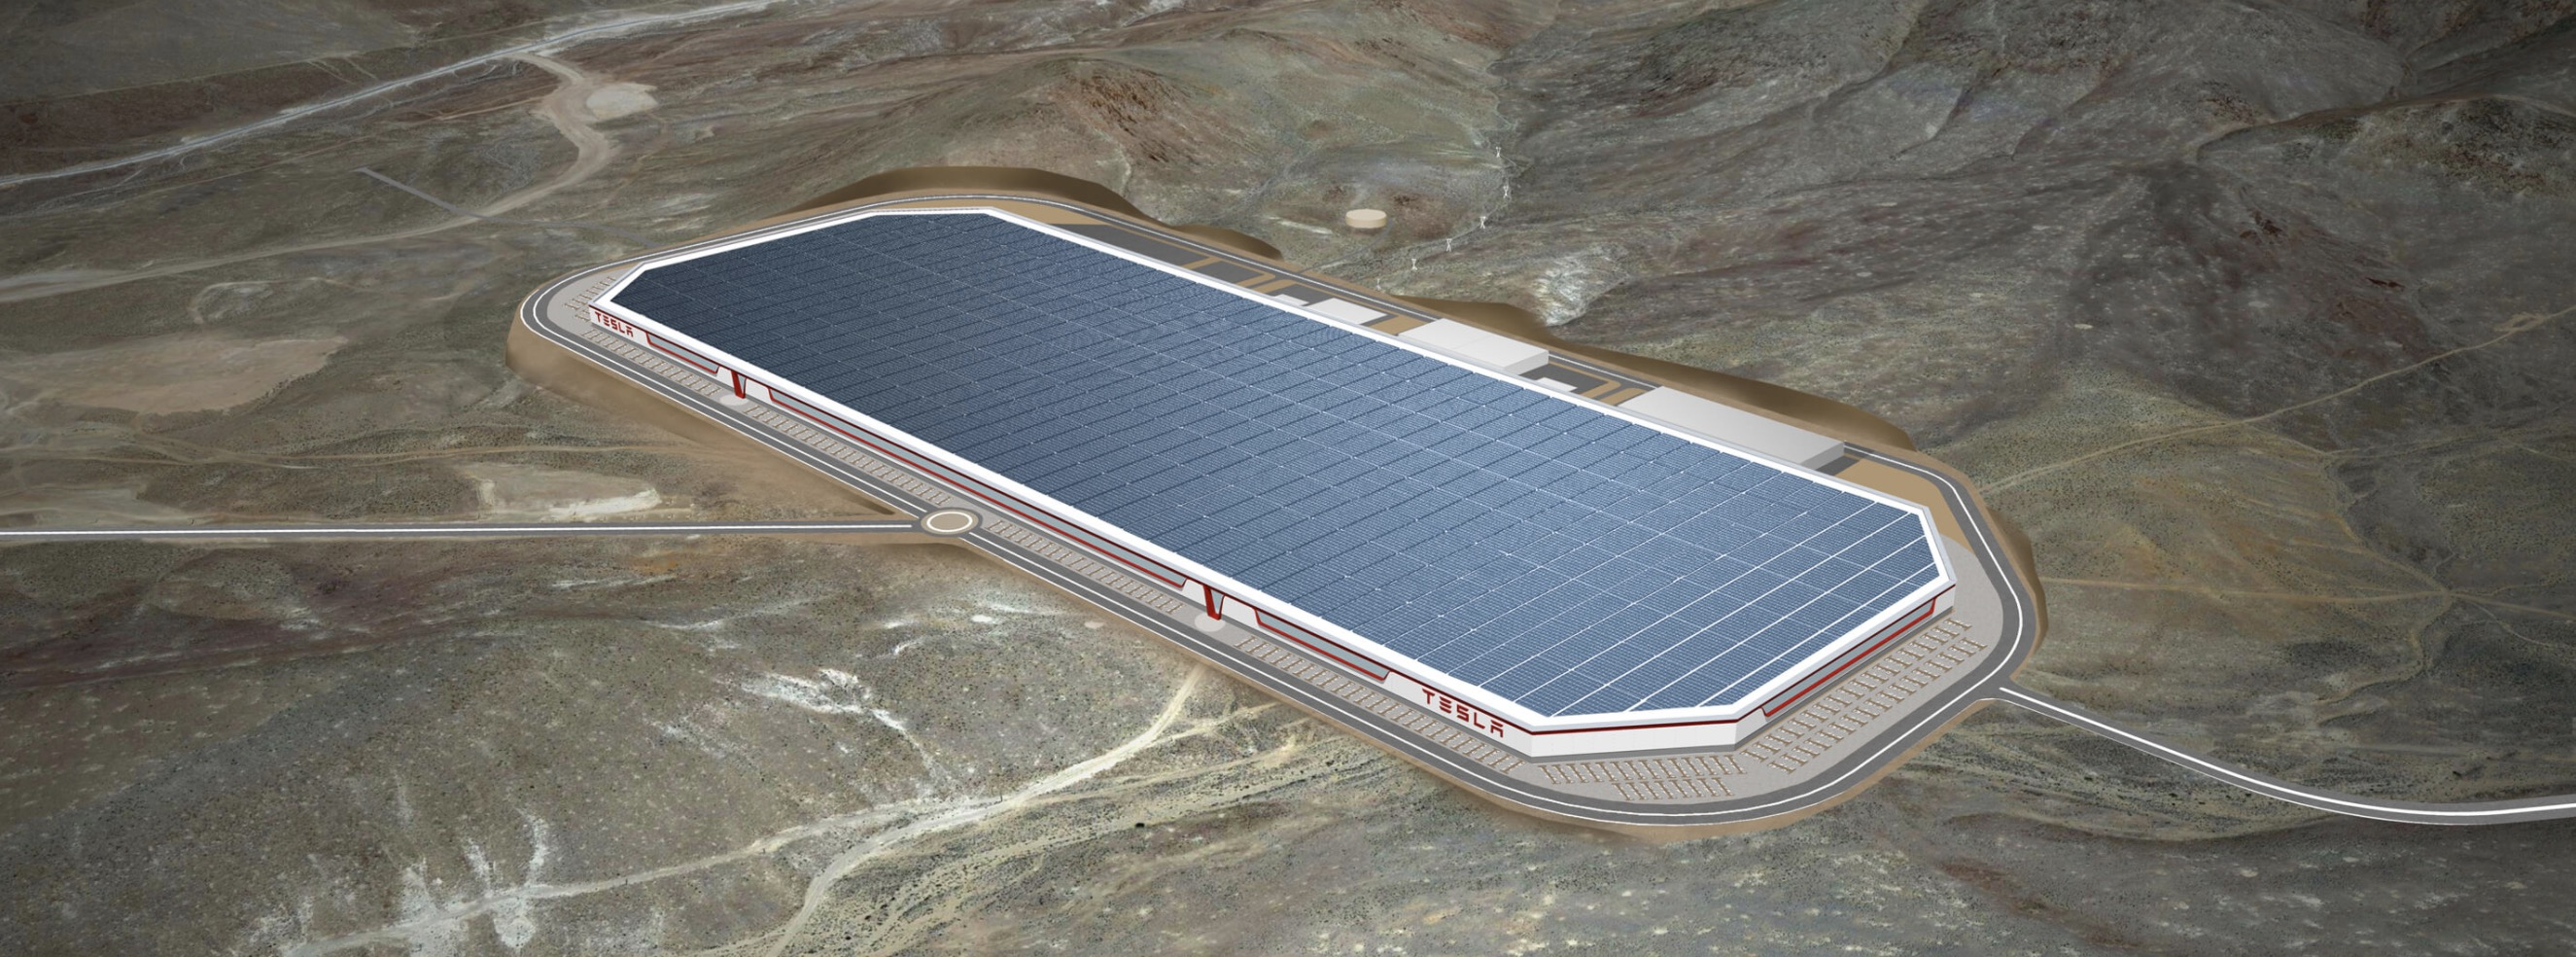 Tesla is looking at Germany for a new Gigafactory